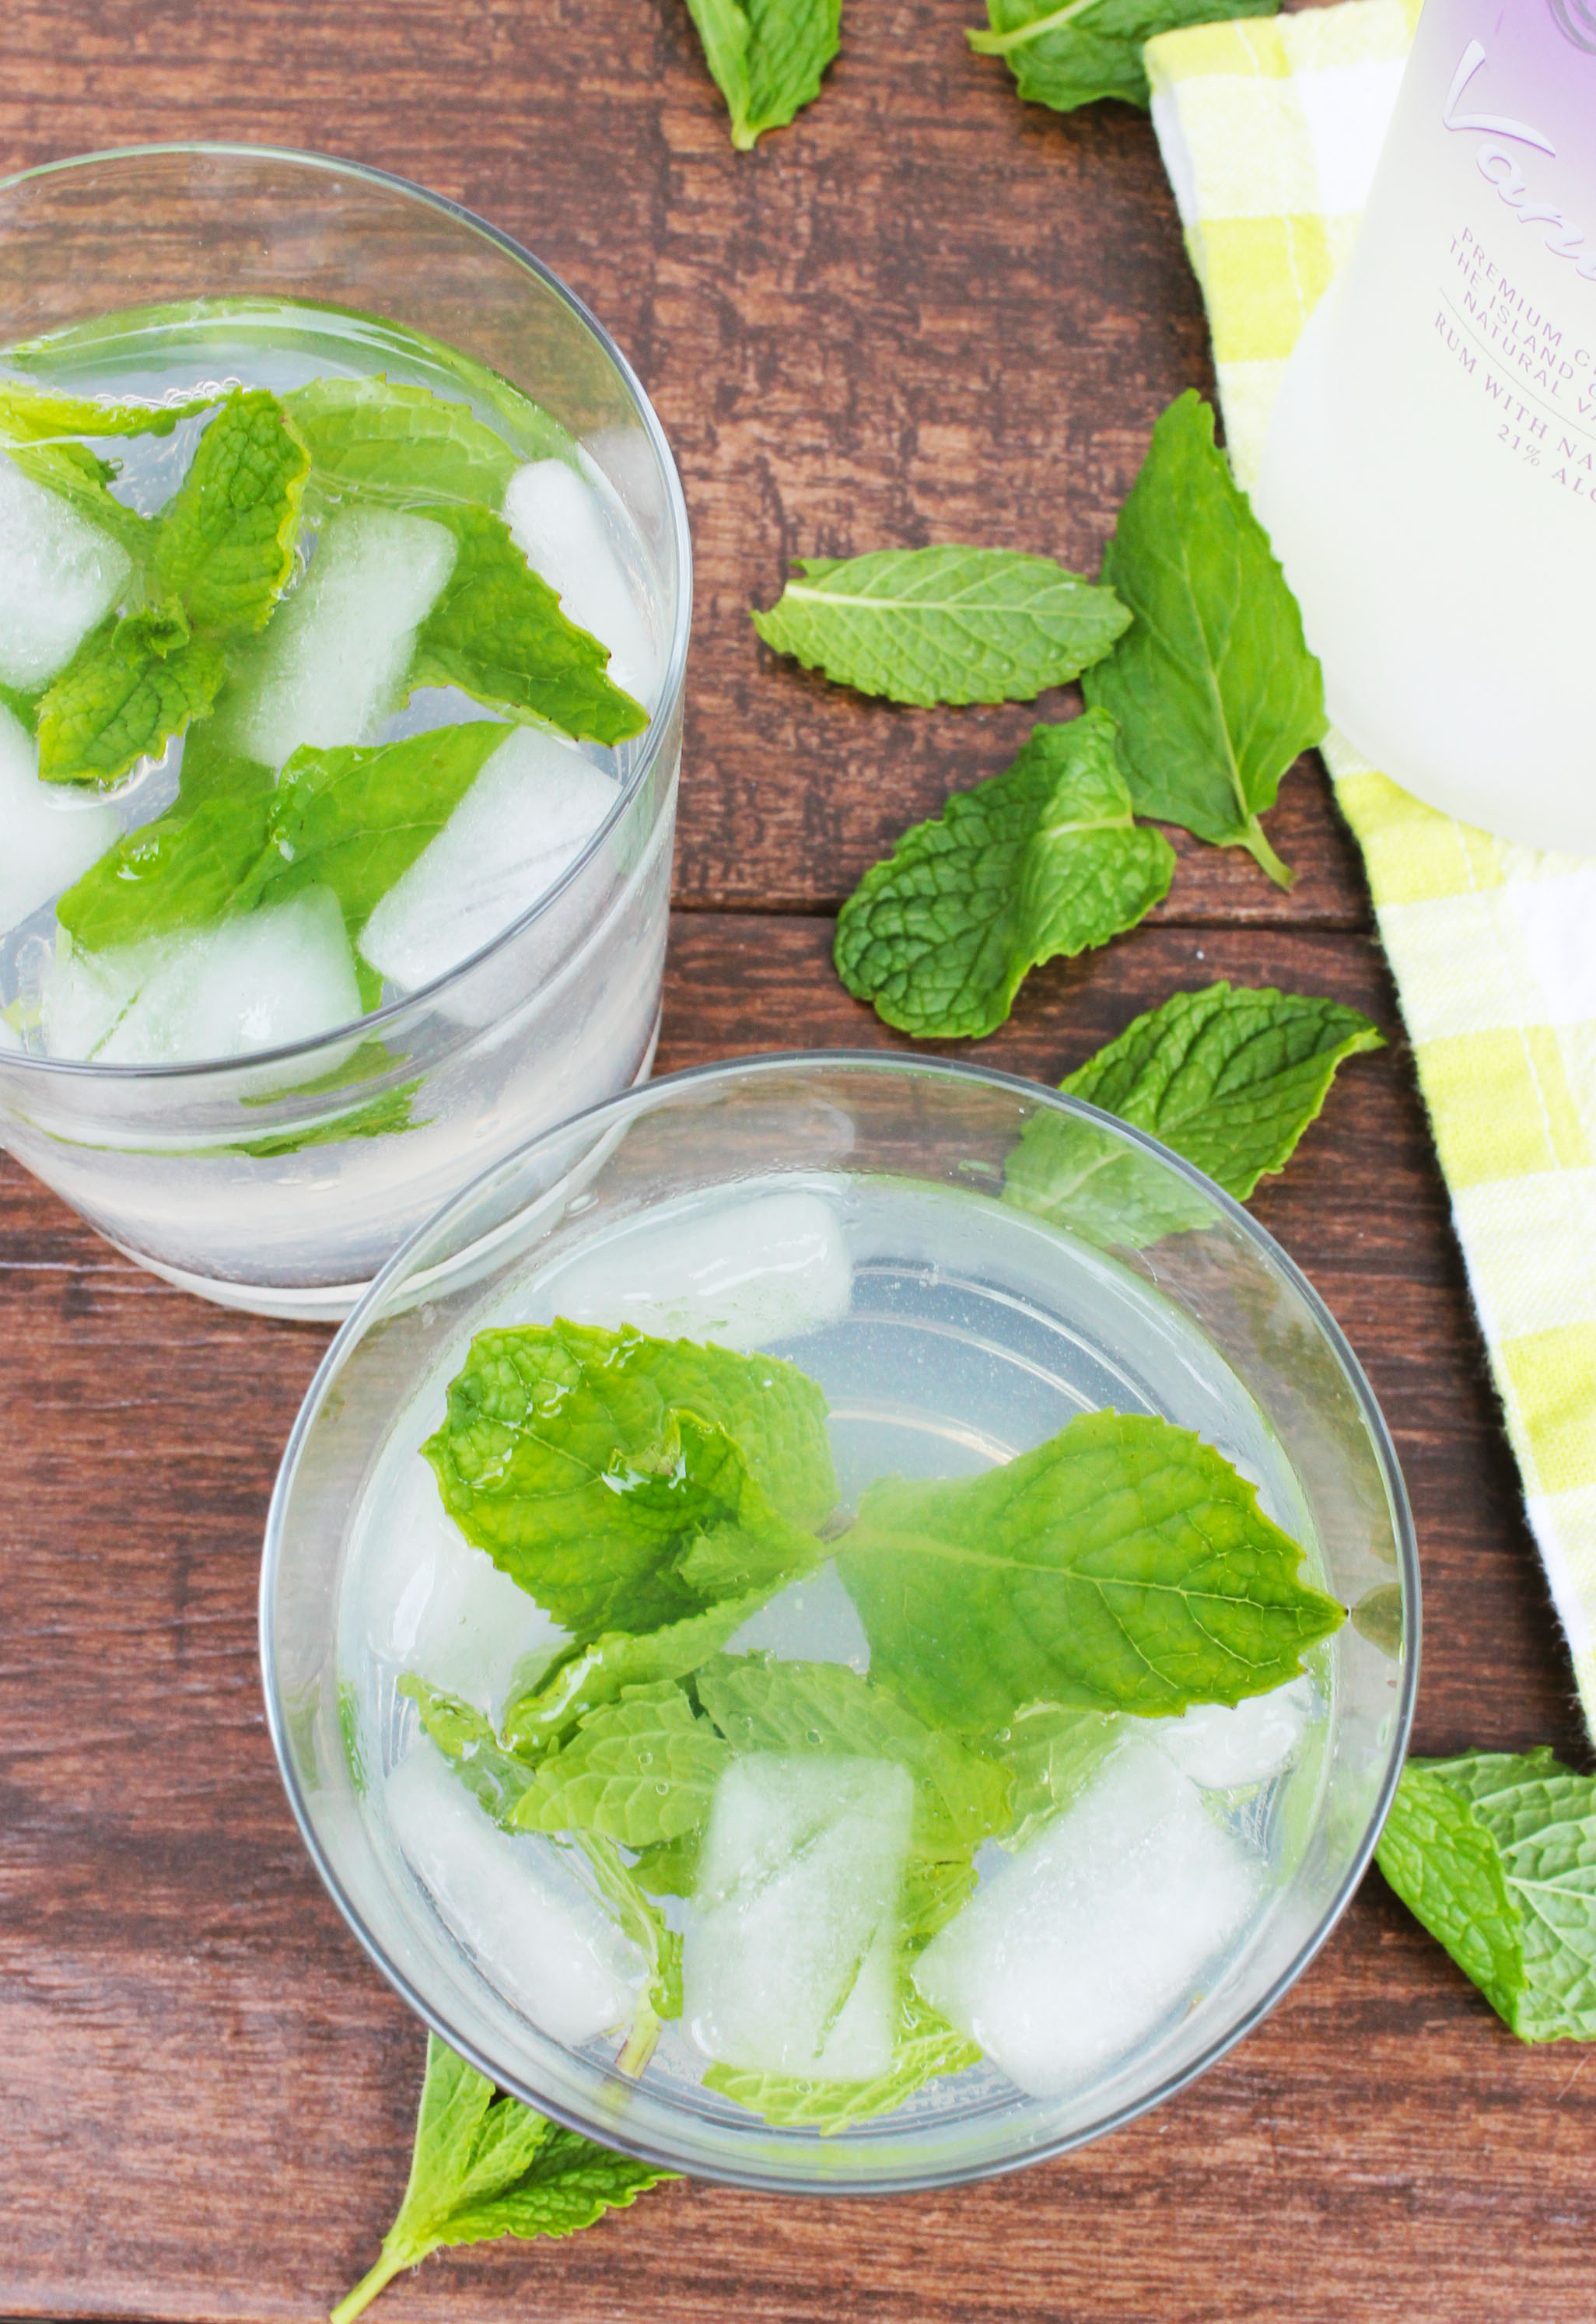 Doesn't this vanilla mojito look amazing? It's the perfect sweet cocktail recipe!